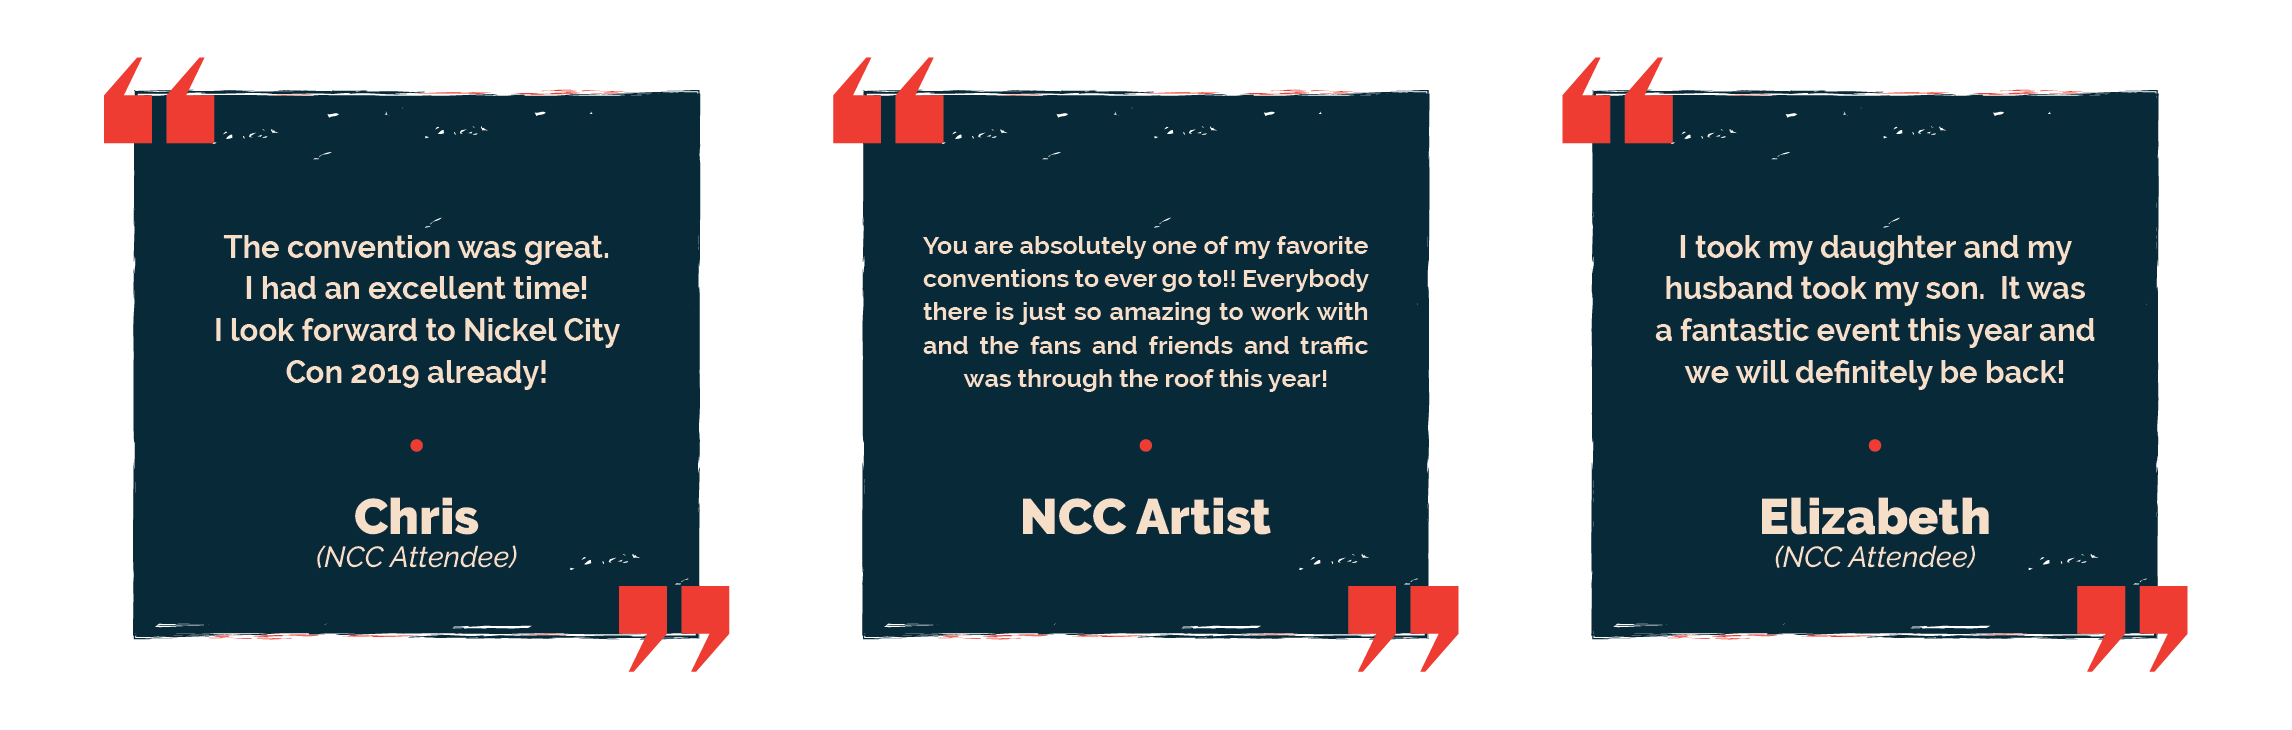 Testimonials regarding Nickel City Con buffalo comic con